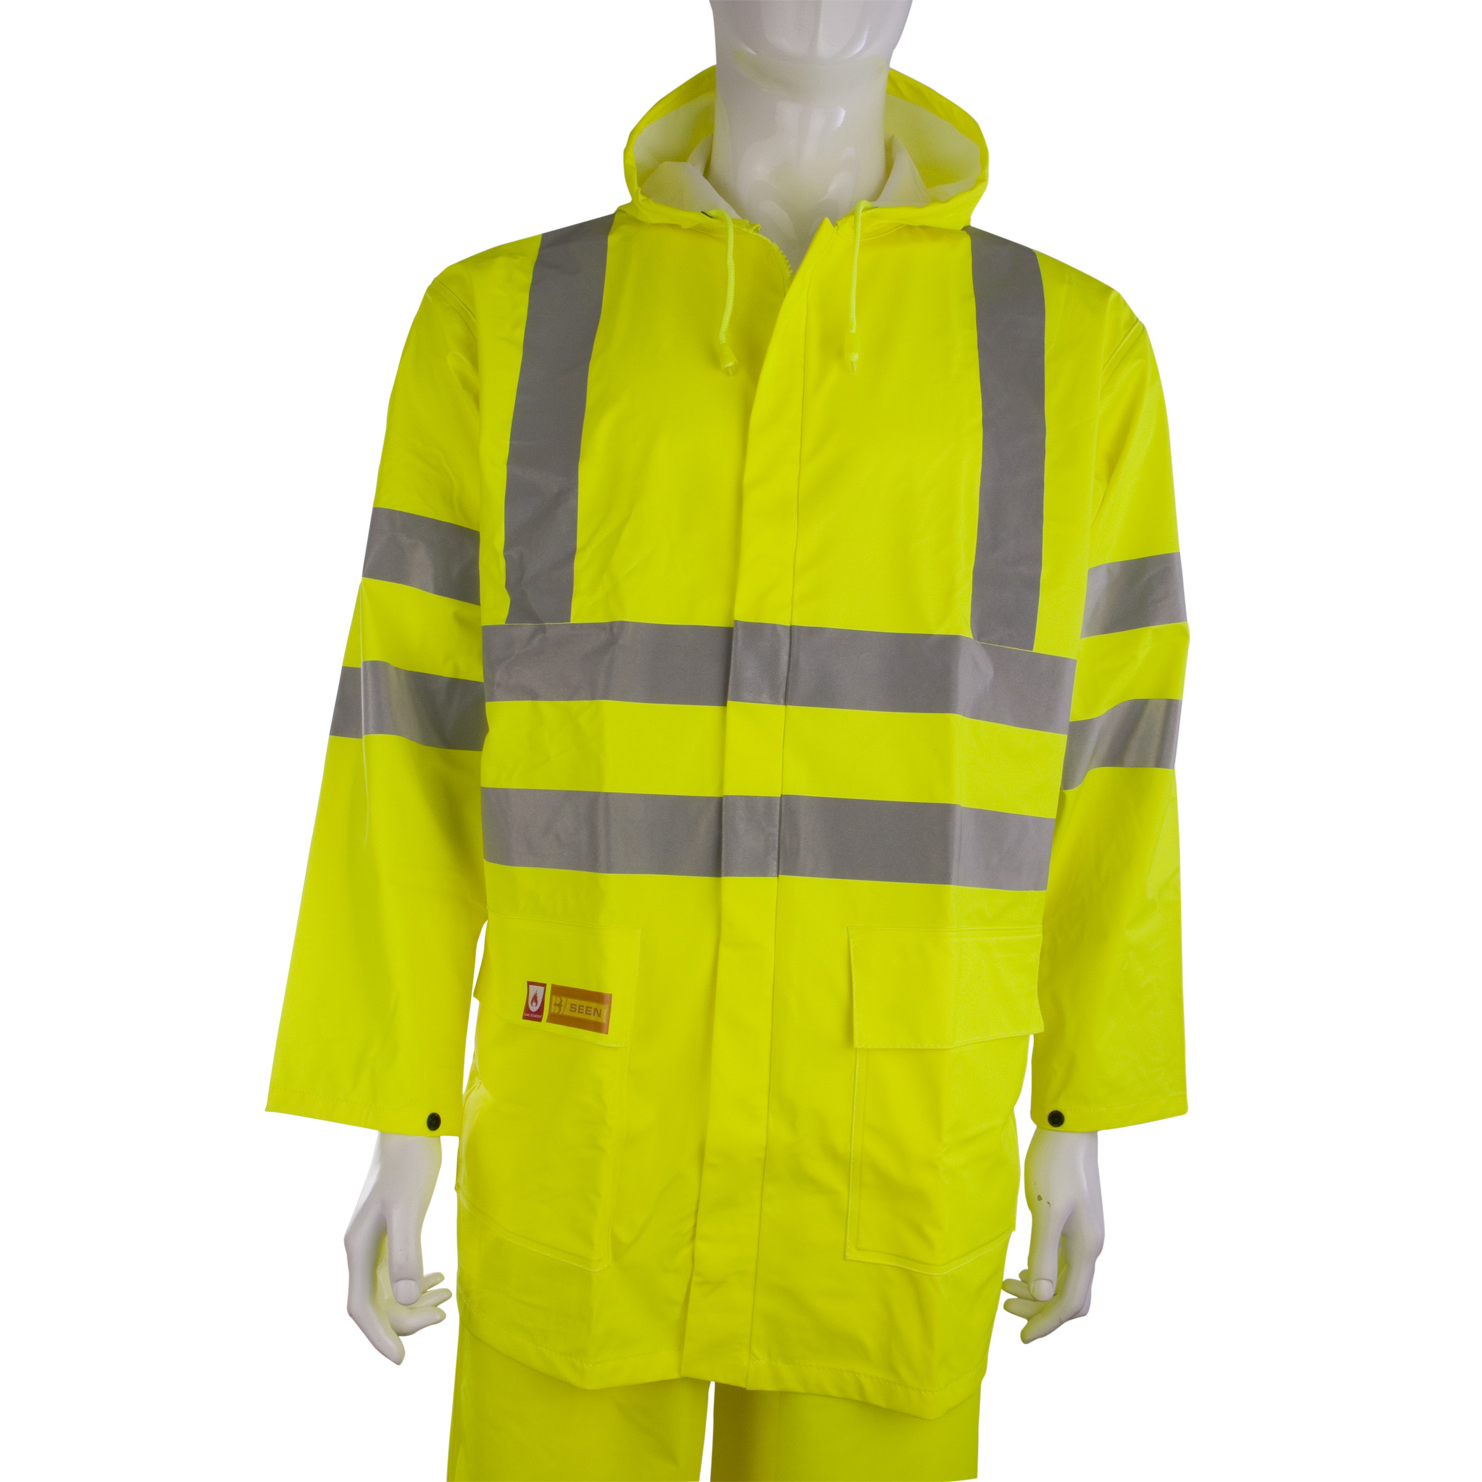 B-Seen Fire Retardant Jacket Anti-static Small Sat Yellow Ref CFRLR55SYS *Up to 3 Day Leadtime*